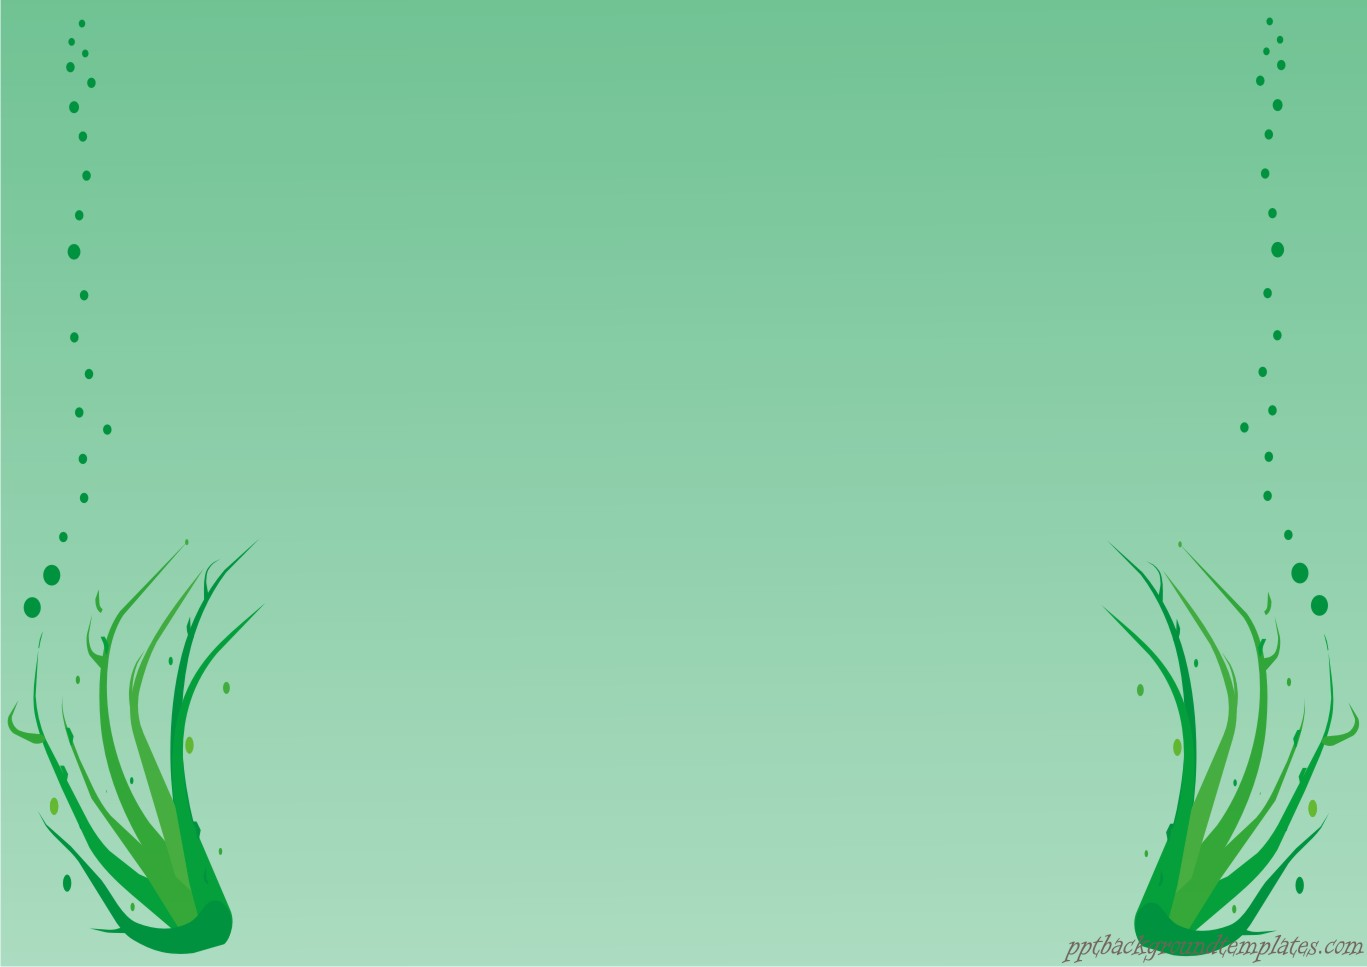 Green border Free PPT Backgrounds for your PowerPoint